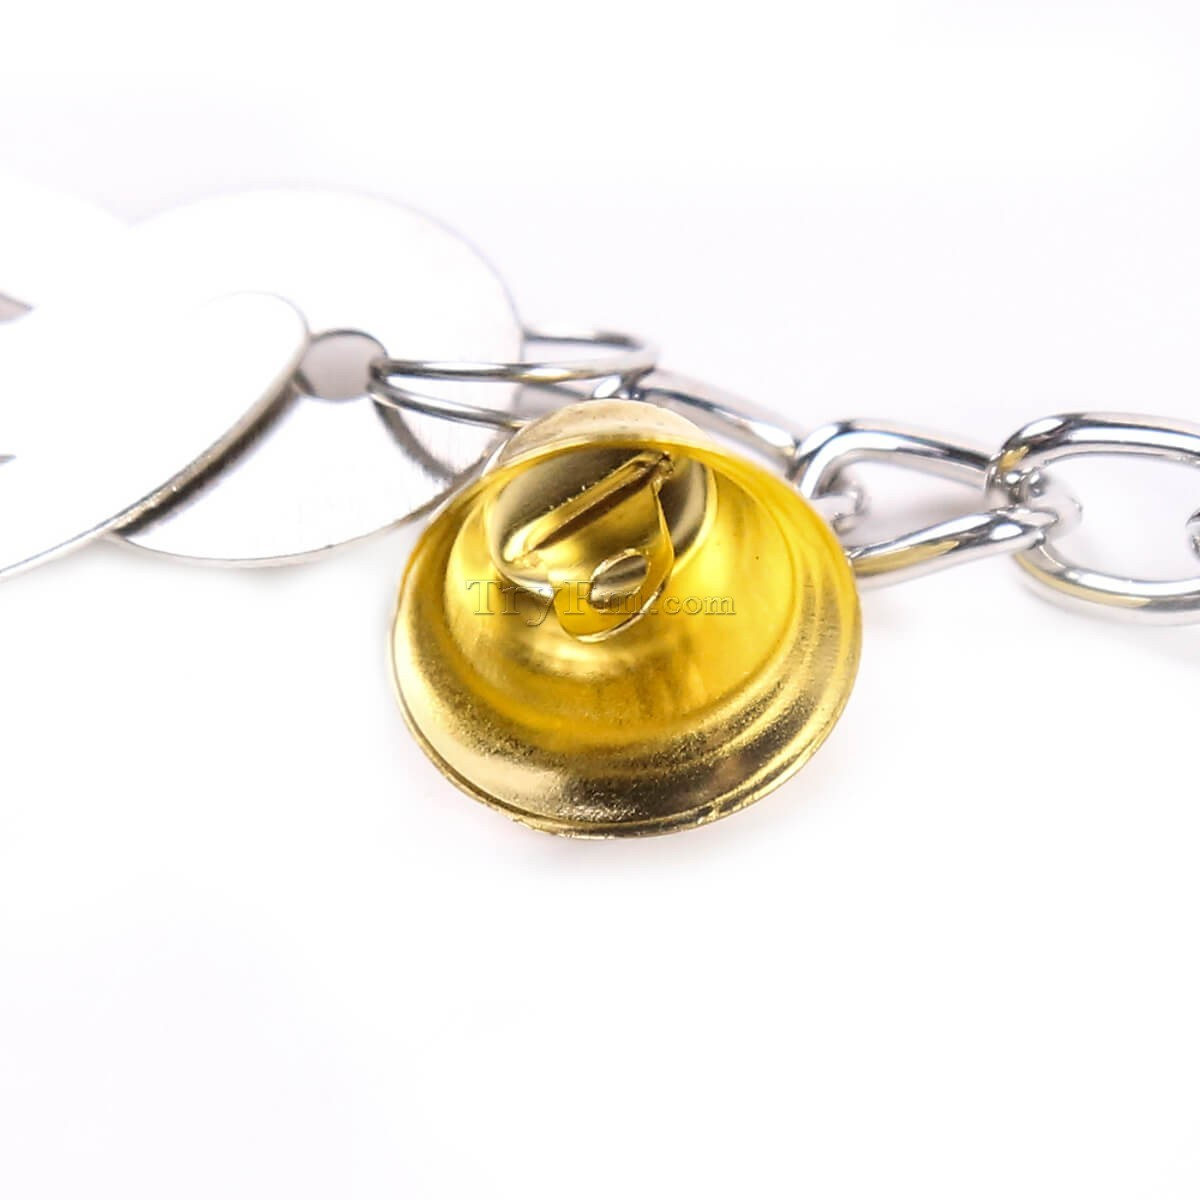 5-nipple-clamp-with-chain-and-bell4.jpg